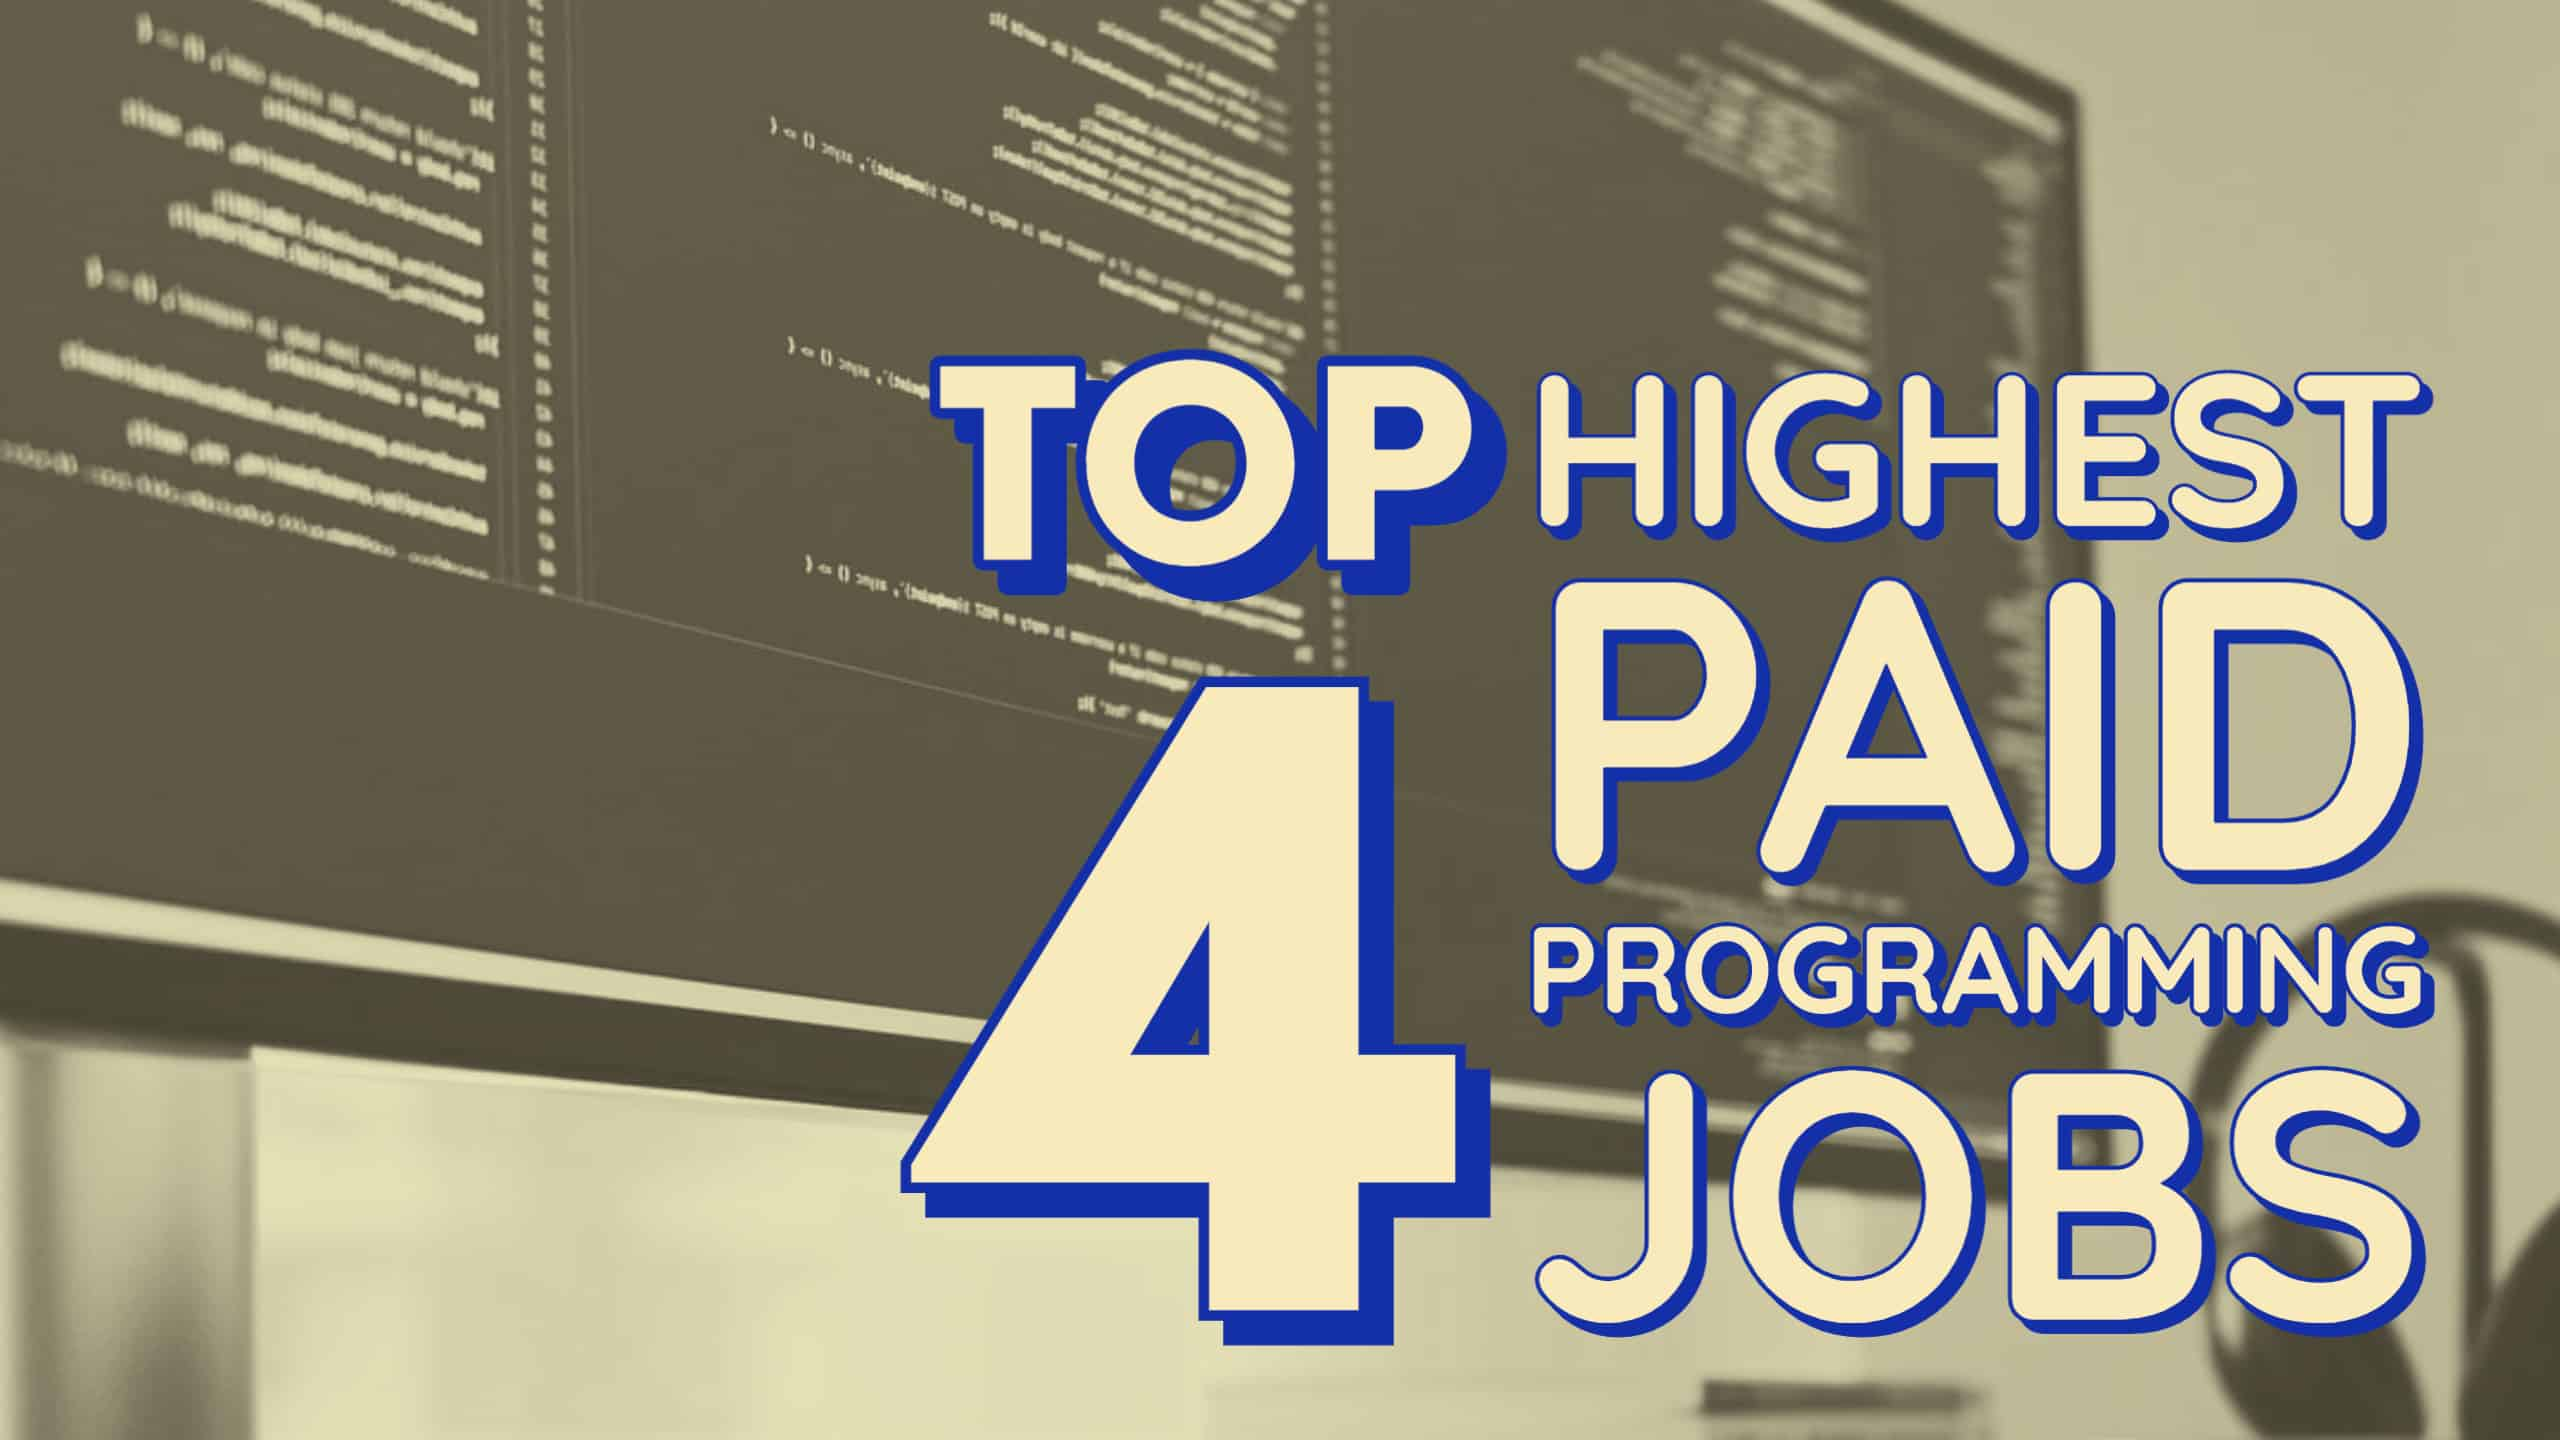 Computer Screen With Highest Paid Programming Jobs On Screen